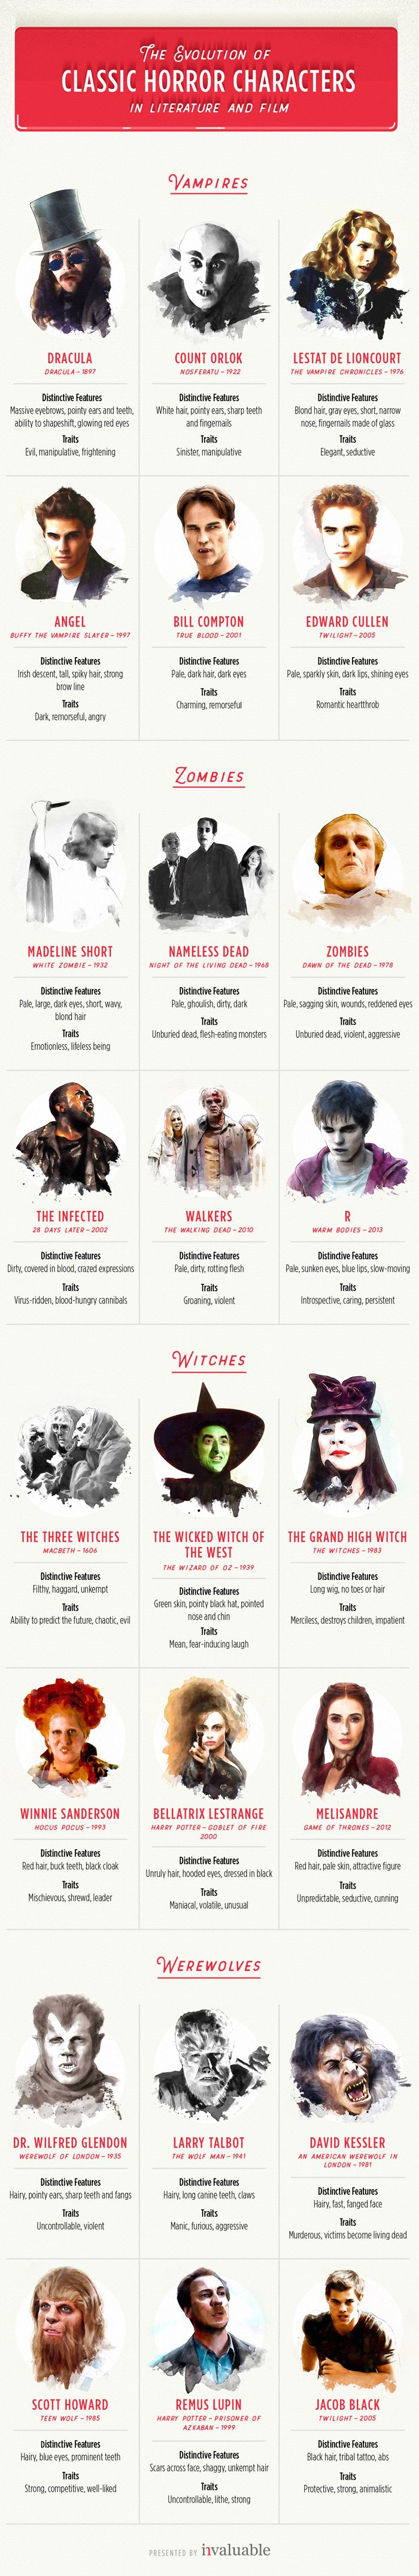 The Evolution of Classic Horror Characters http://geekxgirls.com/article.php?ID=9265